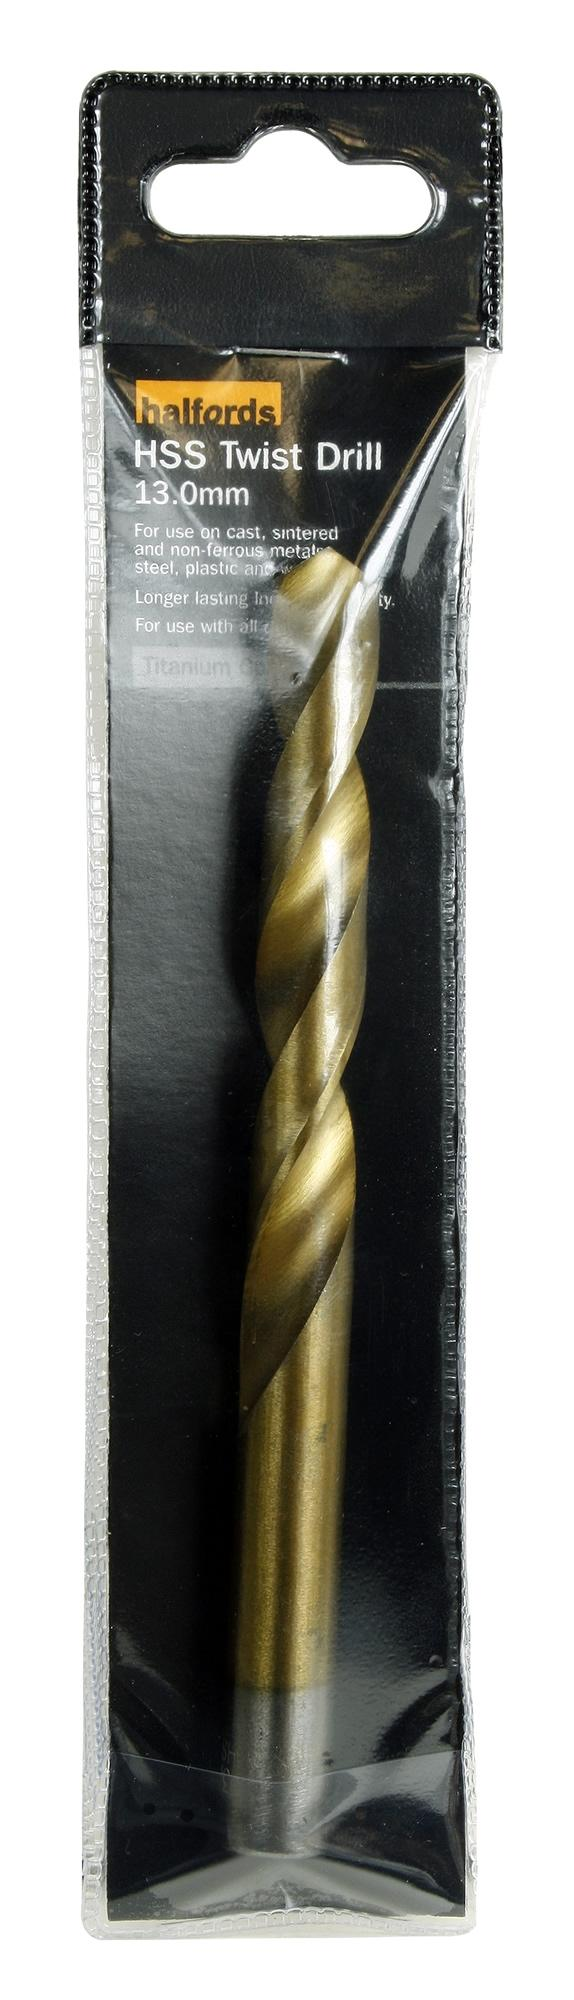 Image of Halfords HSS Twist Drills 13mm